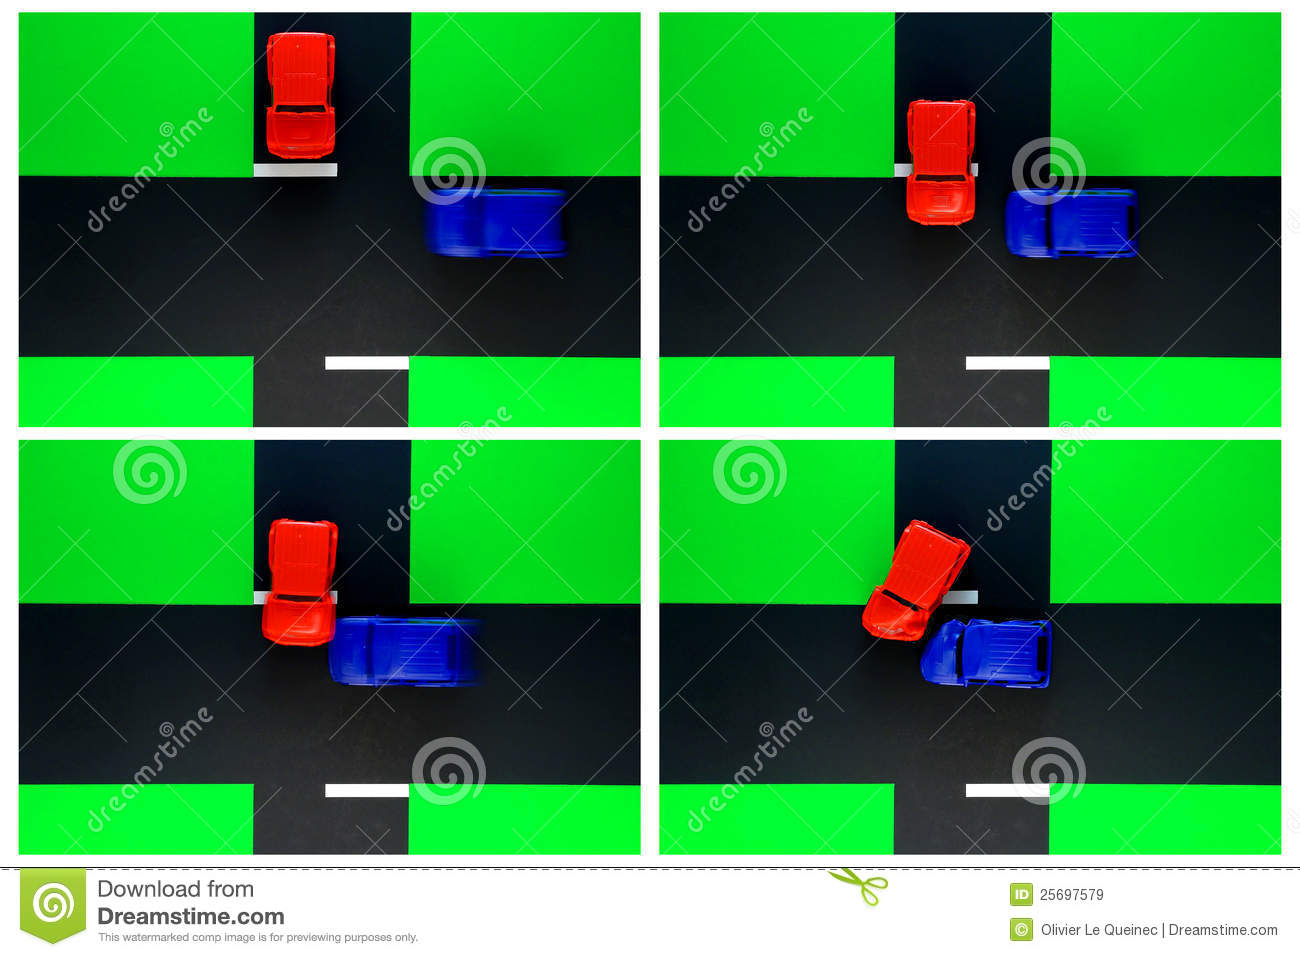 Driver Ed Toy Car Crash Of Stop Sign Road Accident Stock Image ...